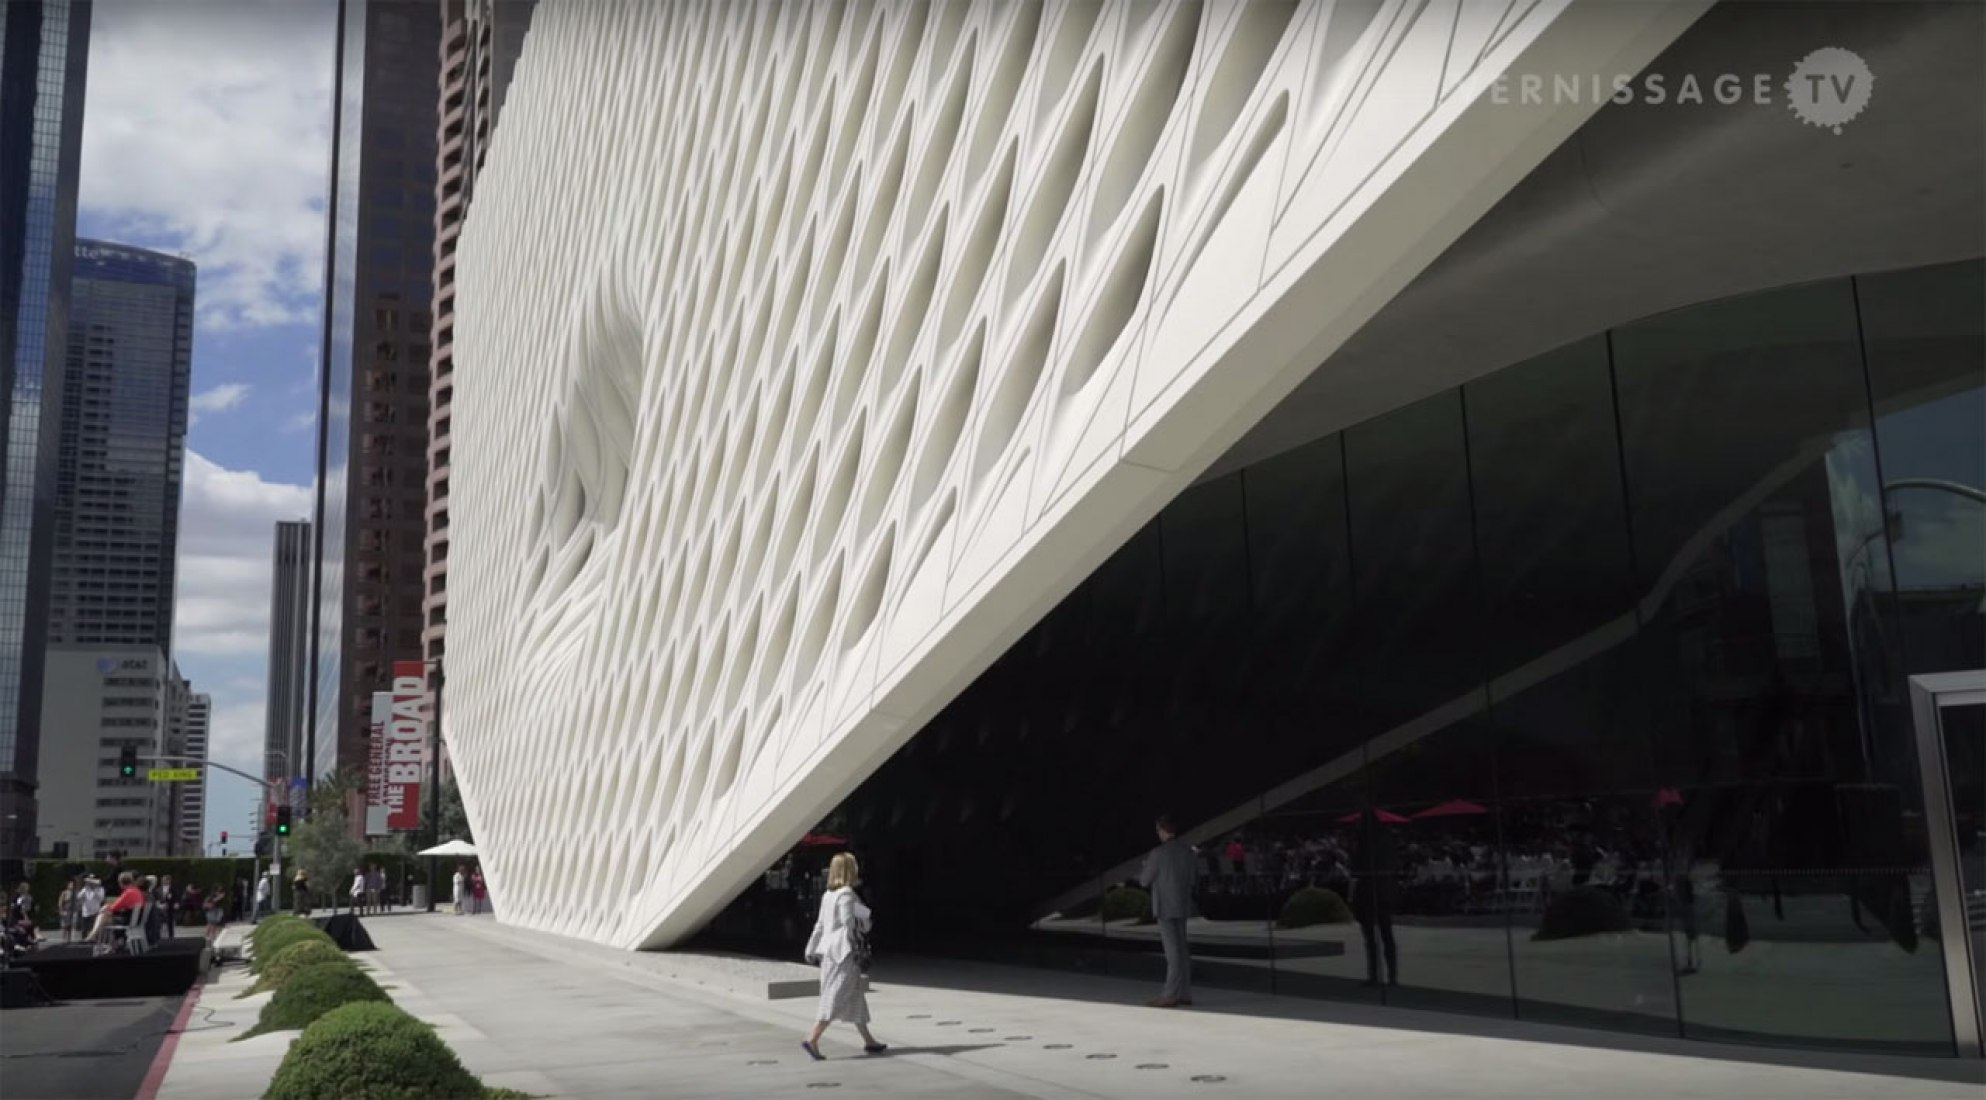 The Broad by Diller Scofidio + Renfro. Video screenshot